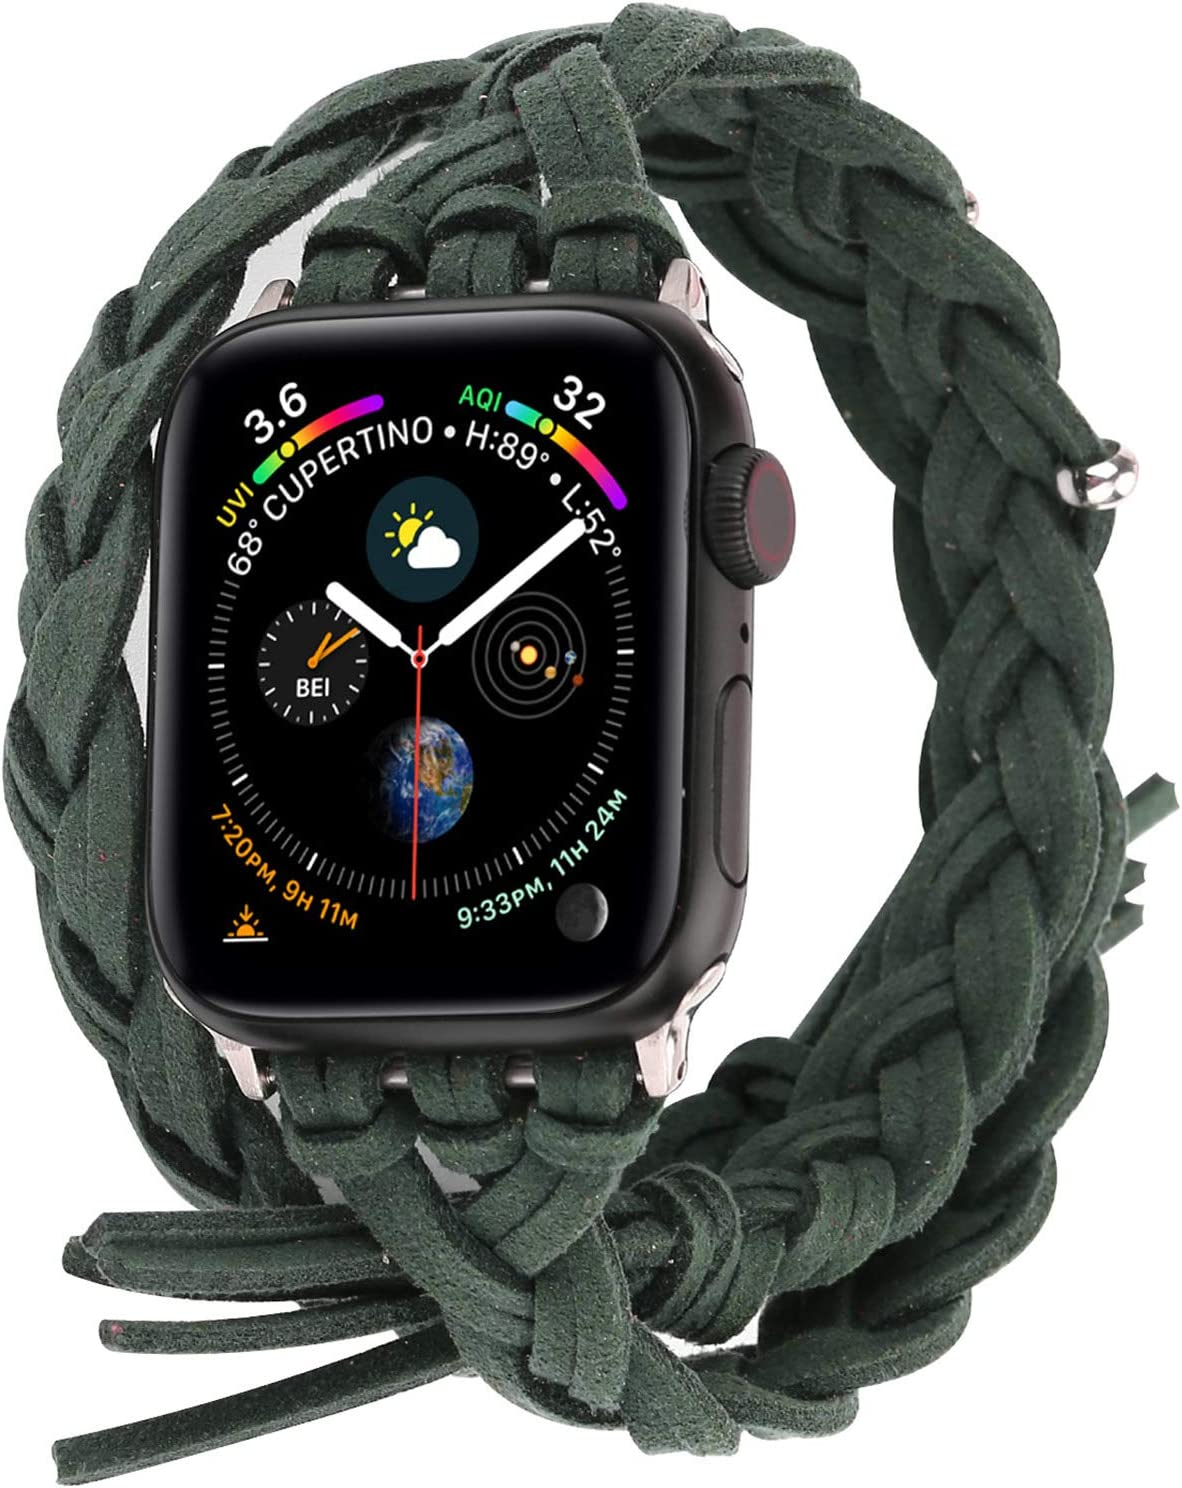 Compatible with Apple Watch Band 38mm 42mm 40mm 44mm, Woven Leather Smart Watch Strap Handmade Double Tour Bracelet Replacement for iWatch Series 5 4 3 2 1 Vintage Band 42mm/44mm, Green